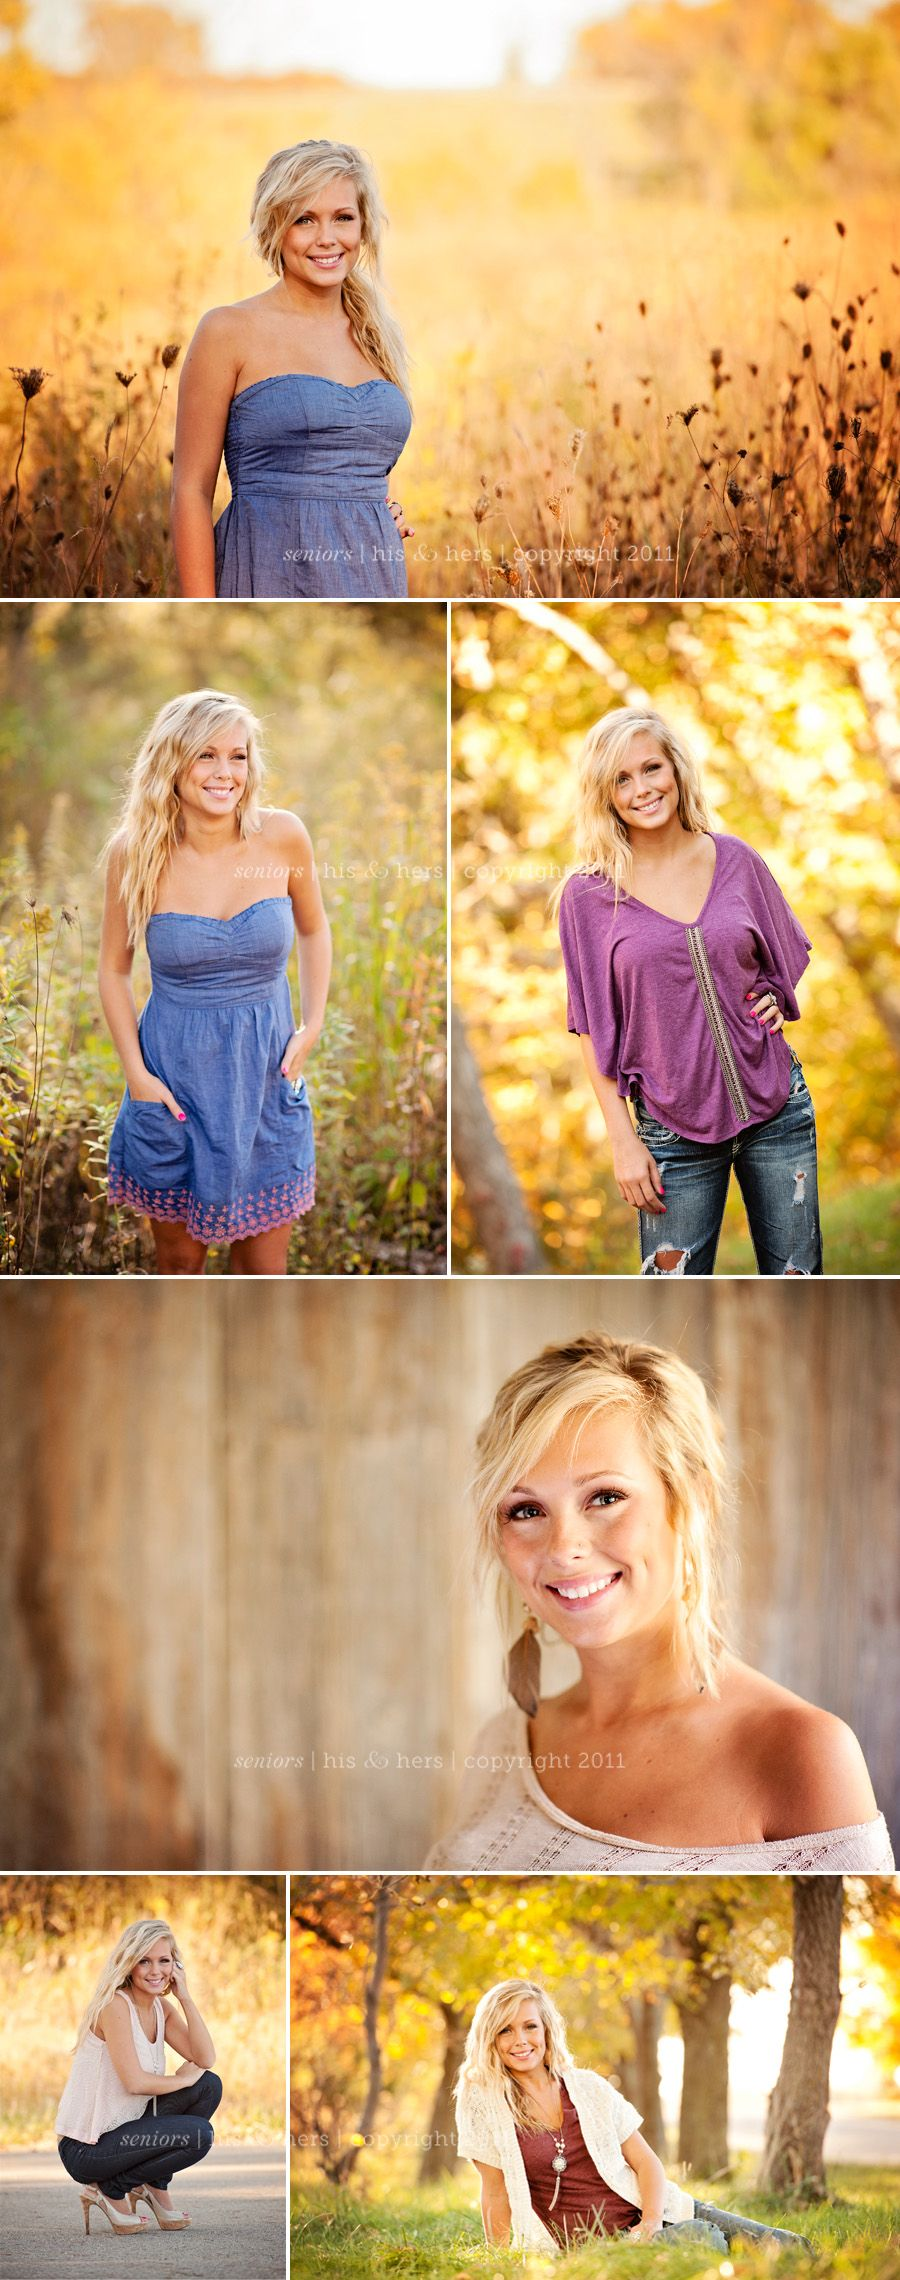 des moines iowa photographer senior pictures senior portraits class of 2012 photography studio des moines